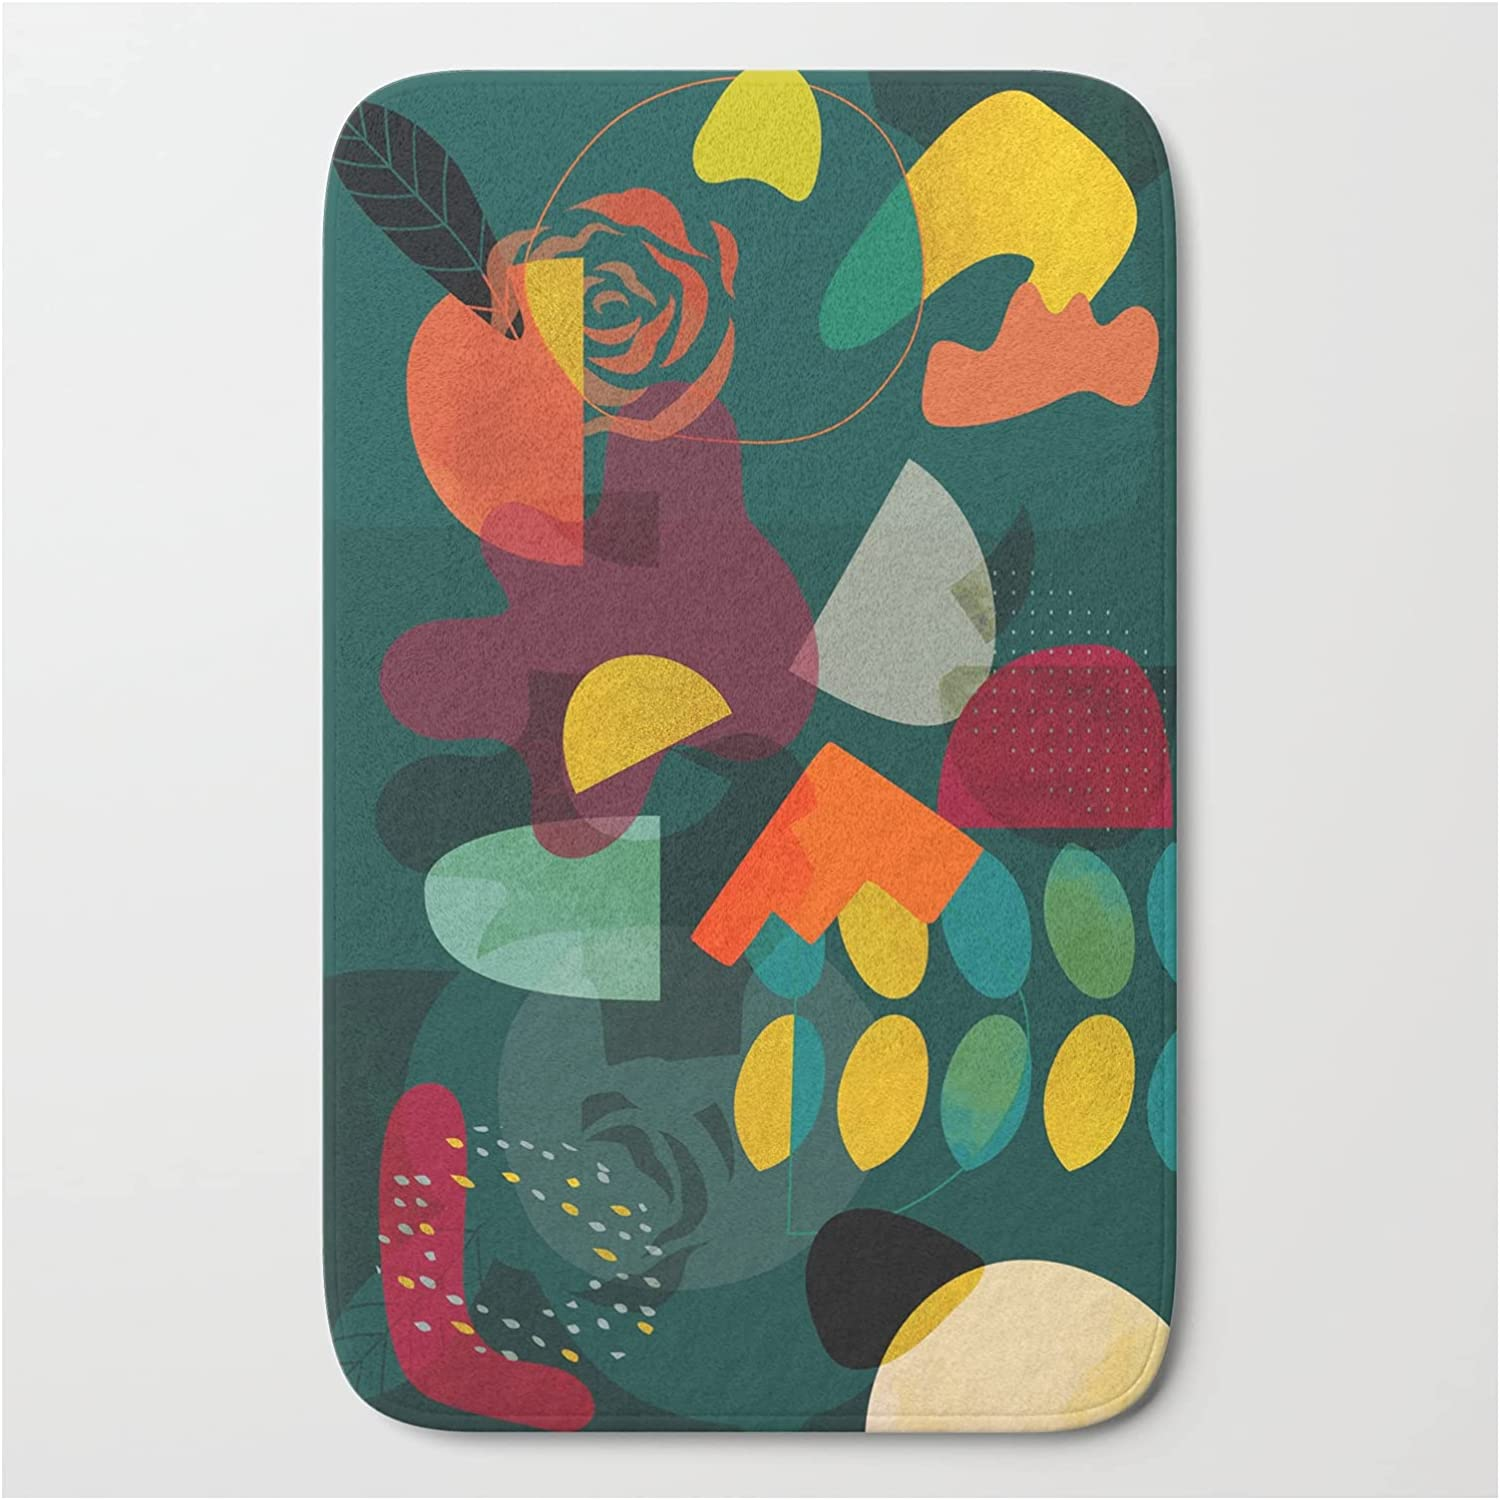 Society6 Mid Century Shapes Garden Party 4 Fine by Rut 40% OFF High quality Cheap Sale BRE A Ana